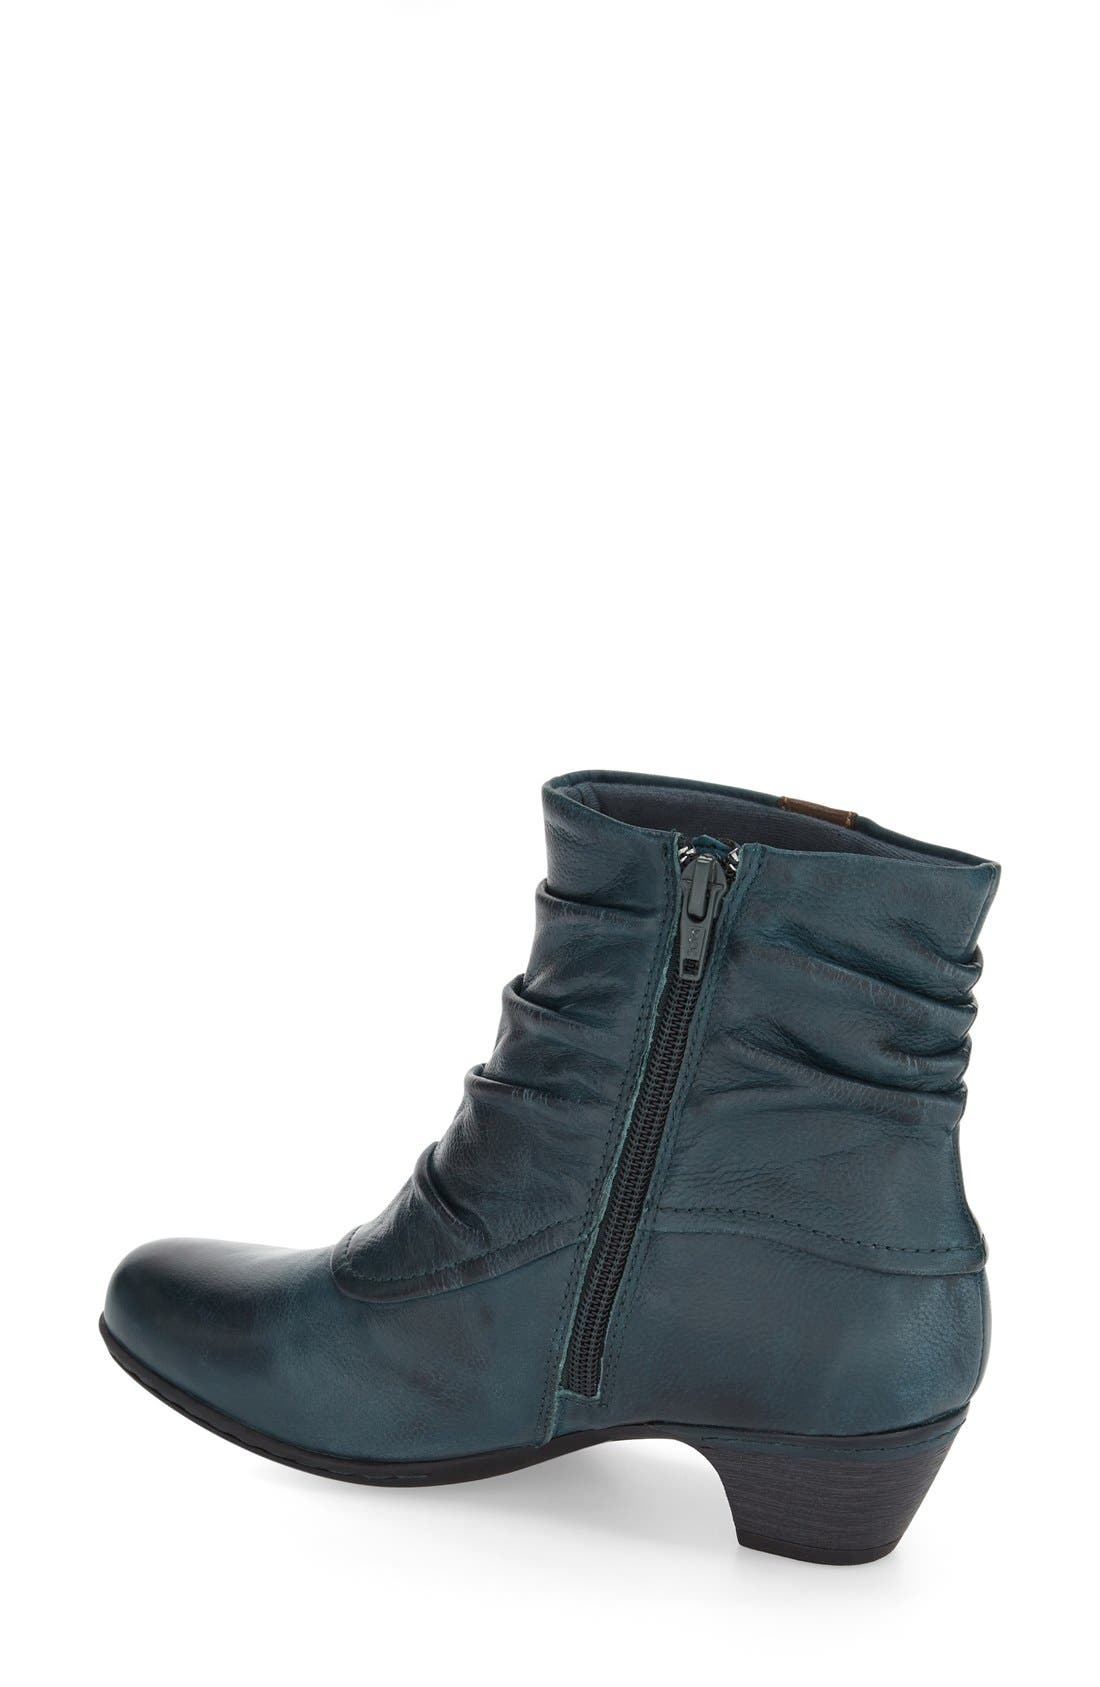 'Alexandra' Boot,                             Alternate thumbnail 4, color,                             BLUE/ TEAL LEATHER